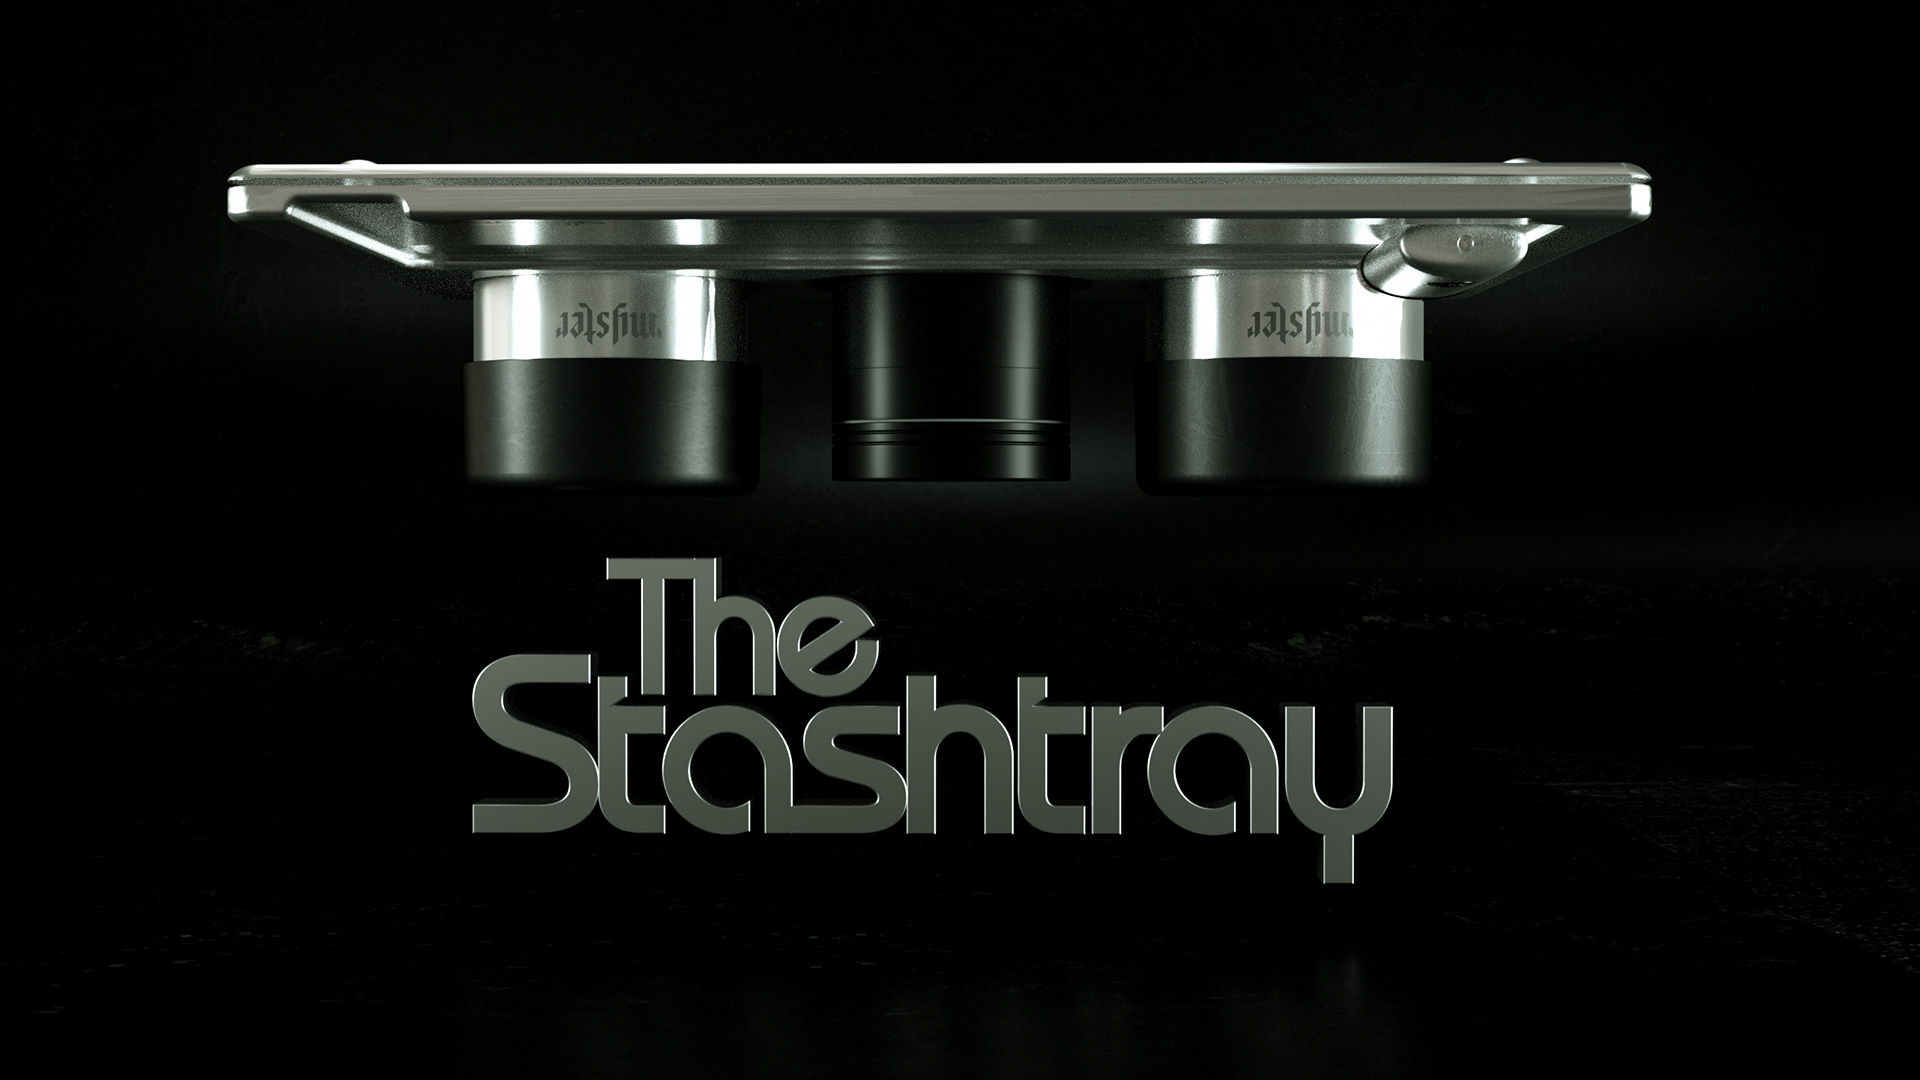 STASHTRAY_STILL_WHOLE_6.1500 copy.jpg